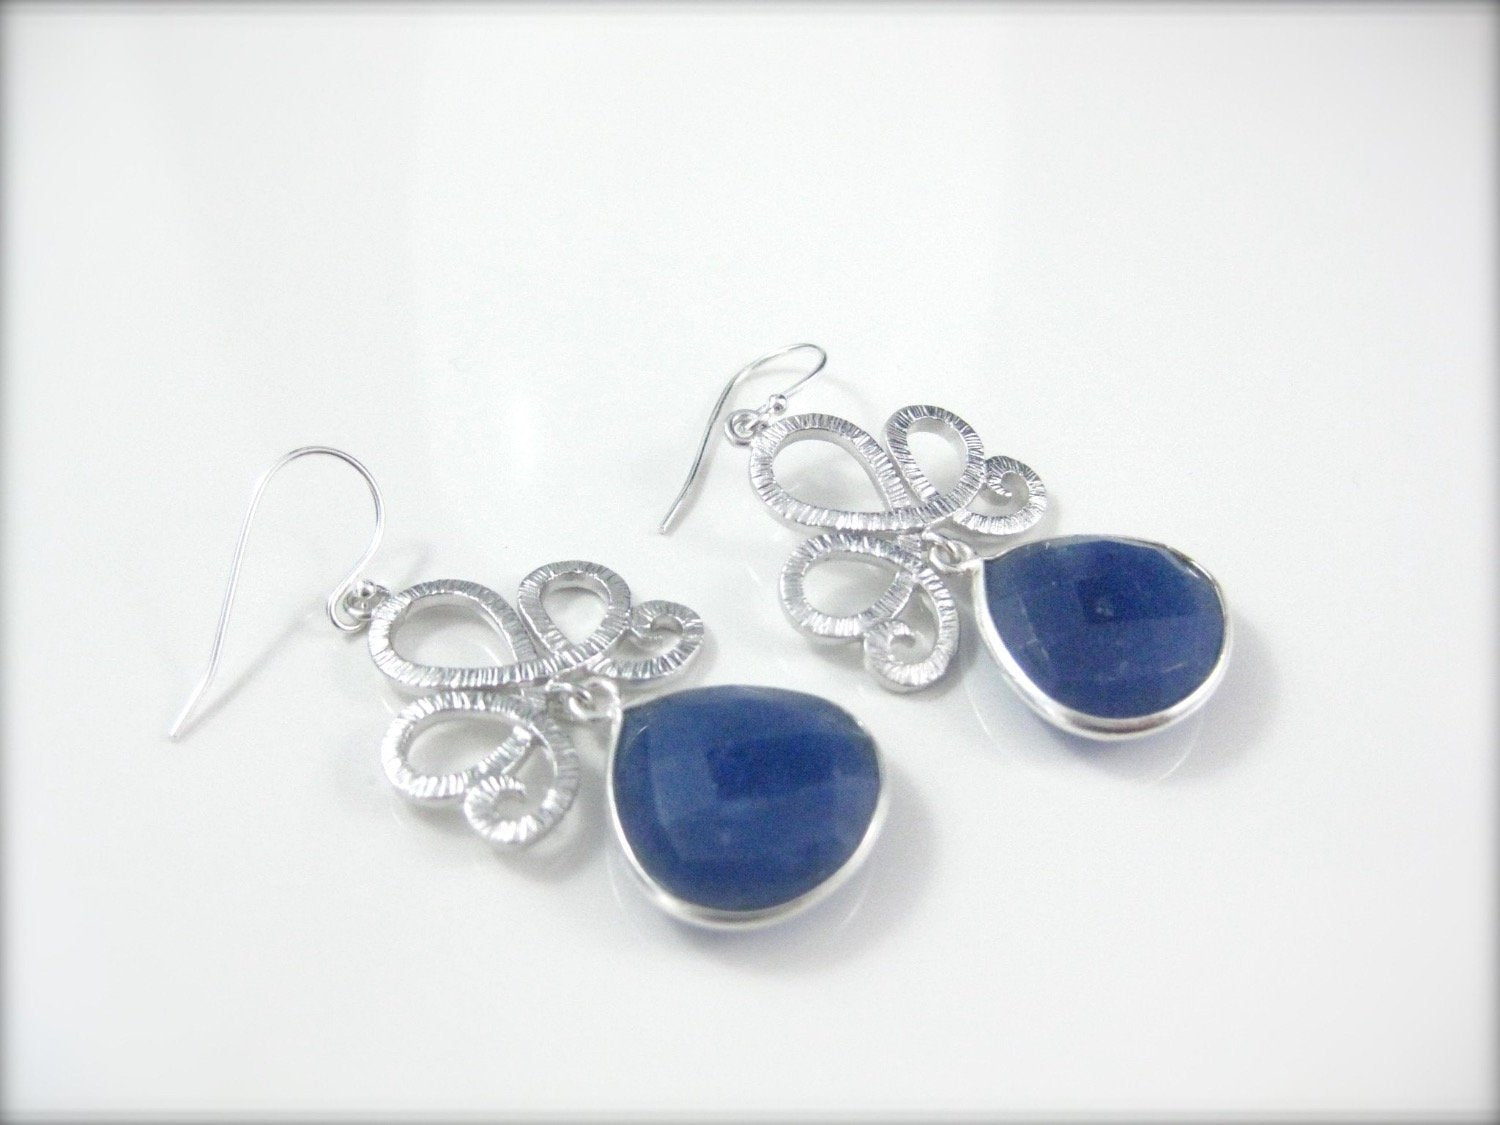 Blue sapphire earrings - Clairesbridal - 4